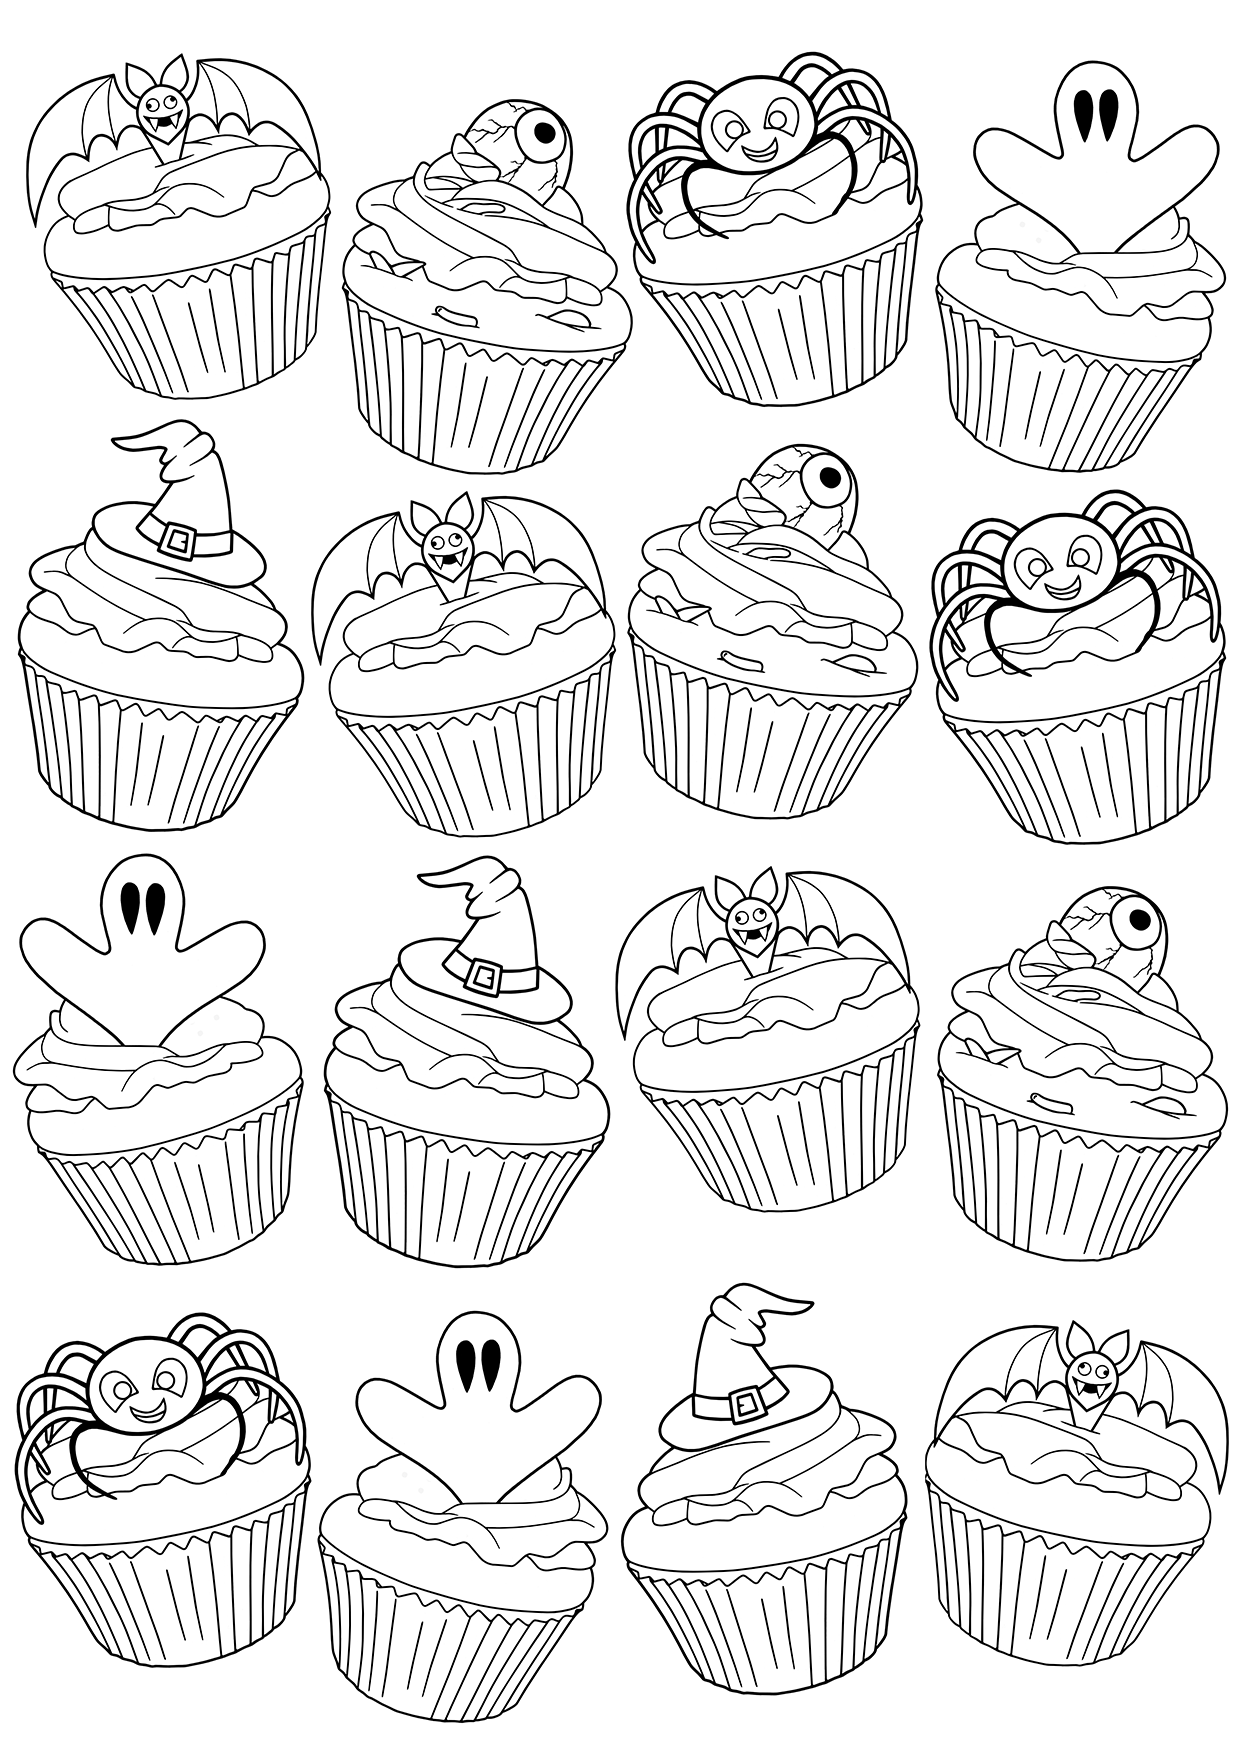 free coloring book page halloween cupcakes by blue star